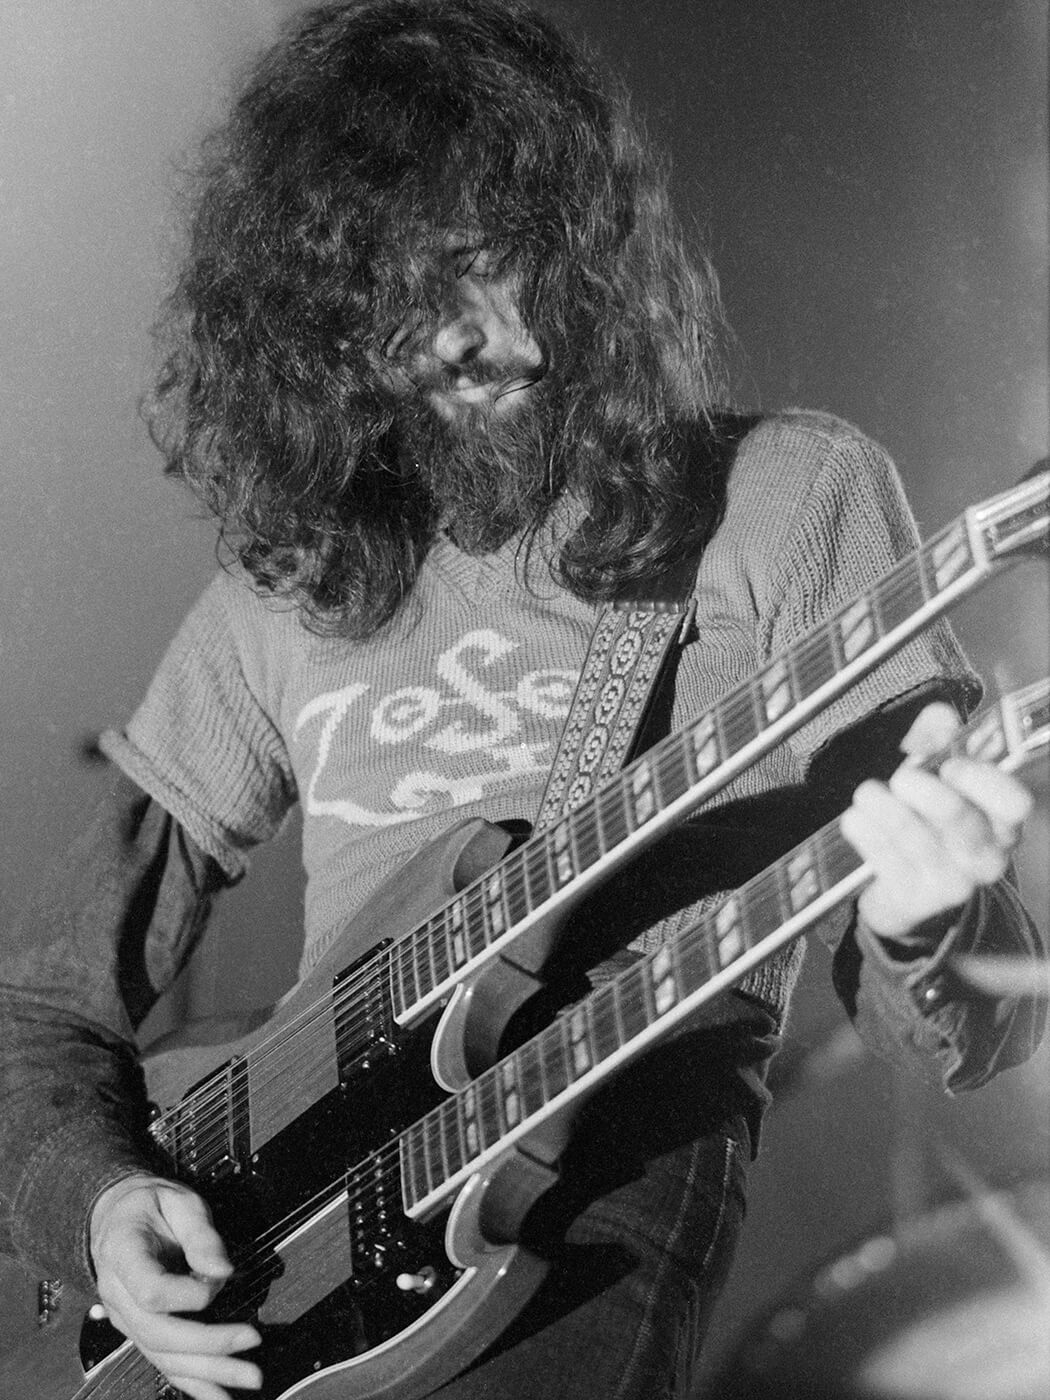 Jimmy Page in 1971